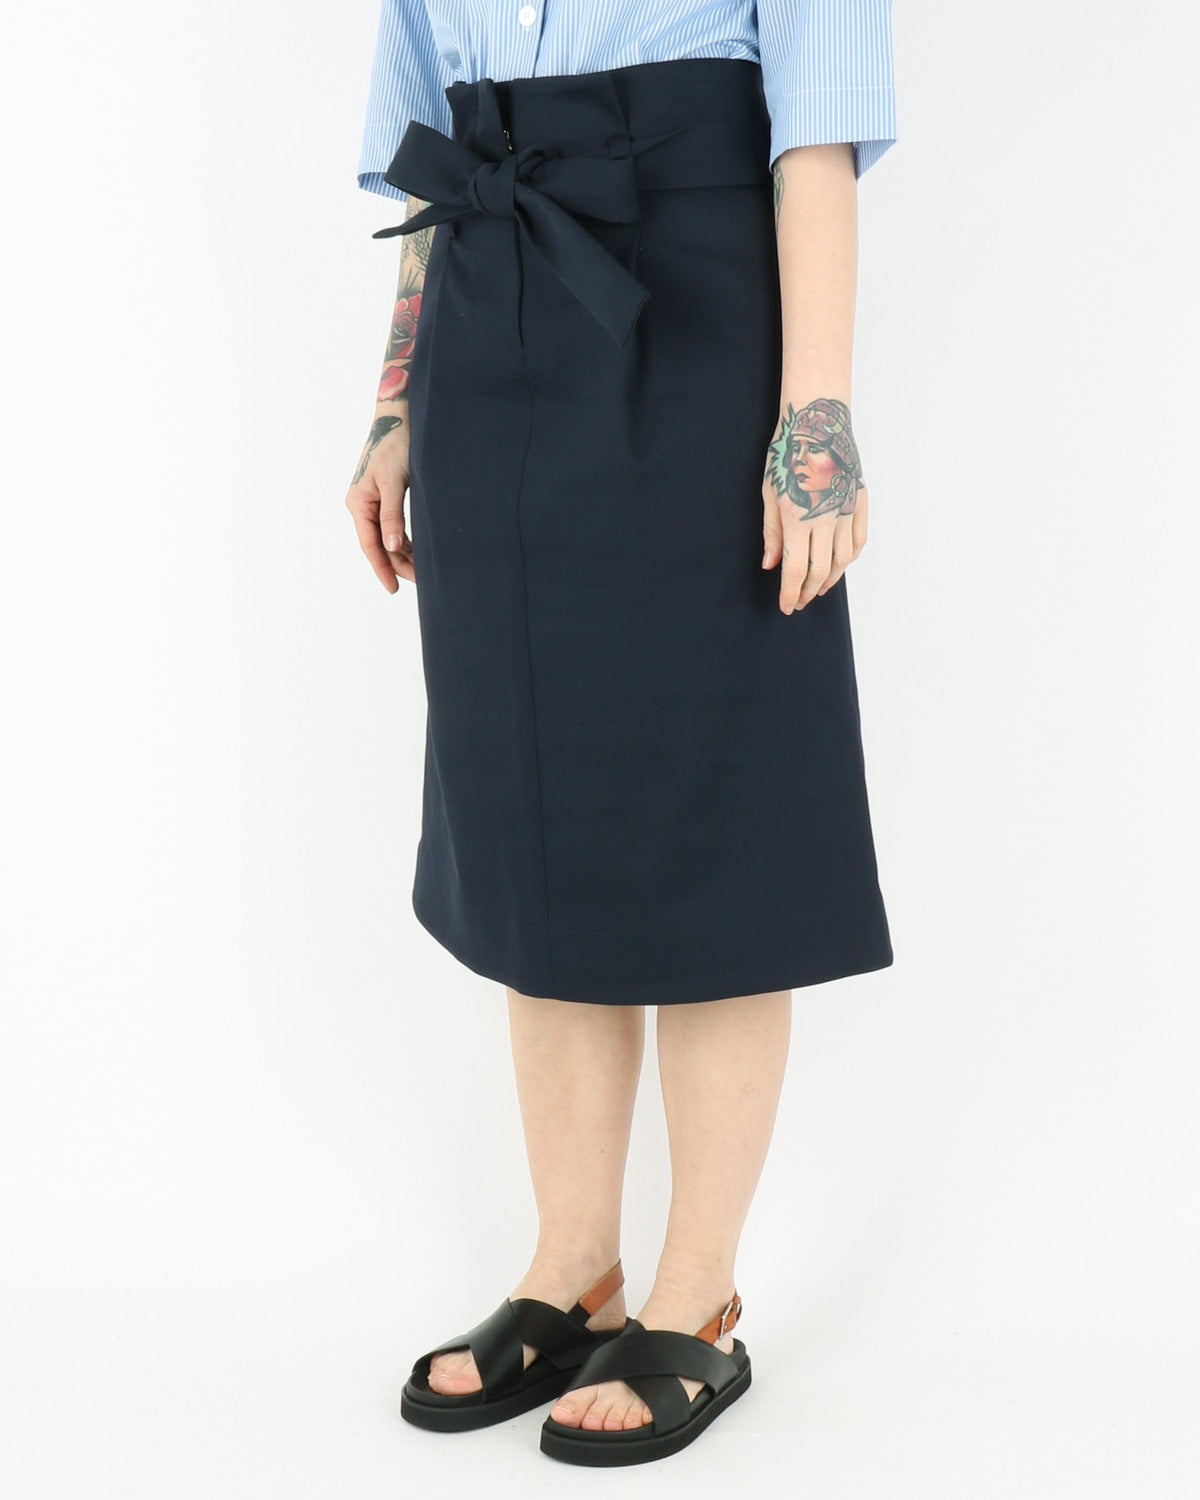 libertine libertine_endless skirt_navy_2_3